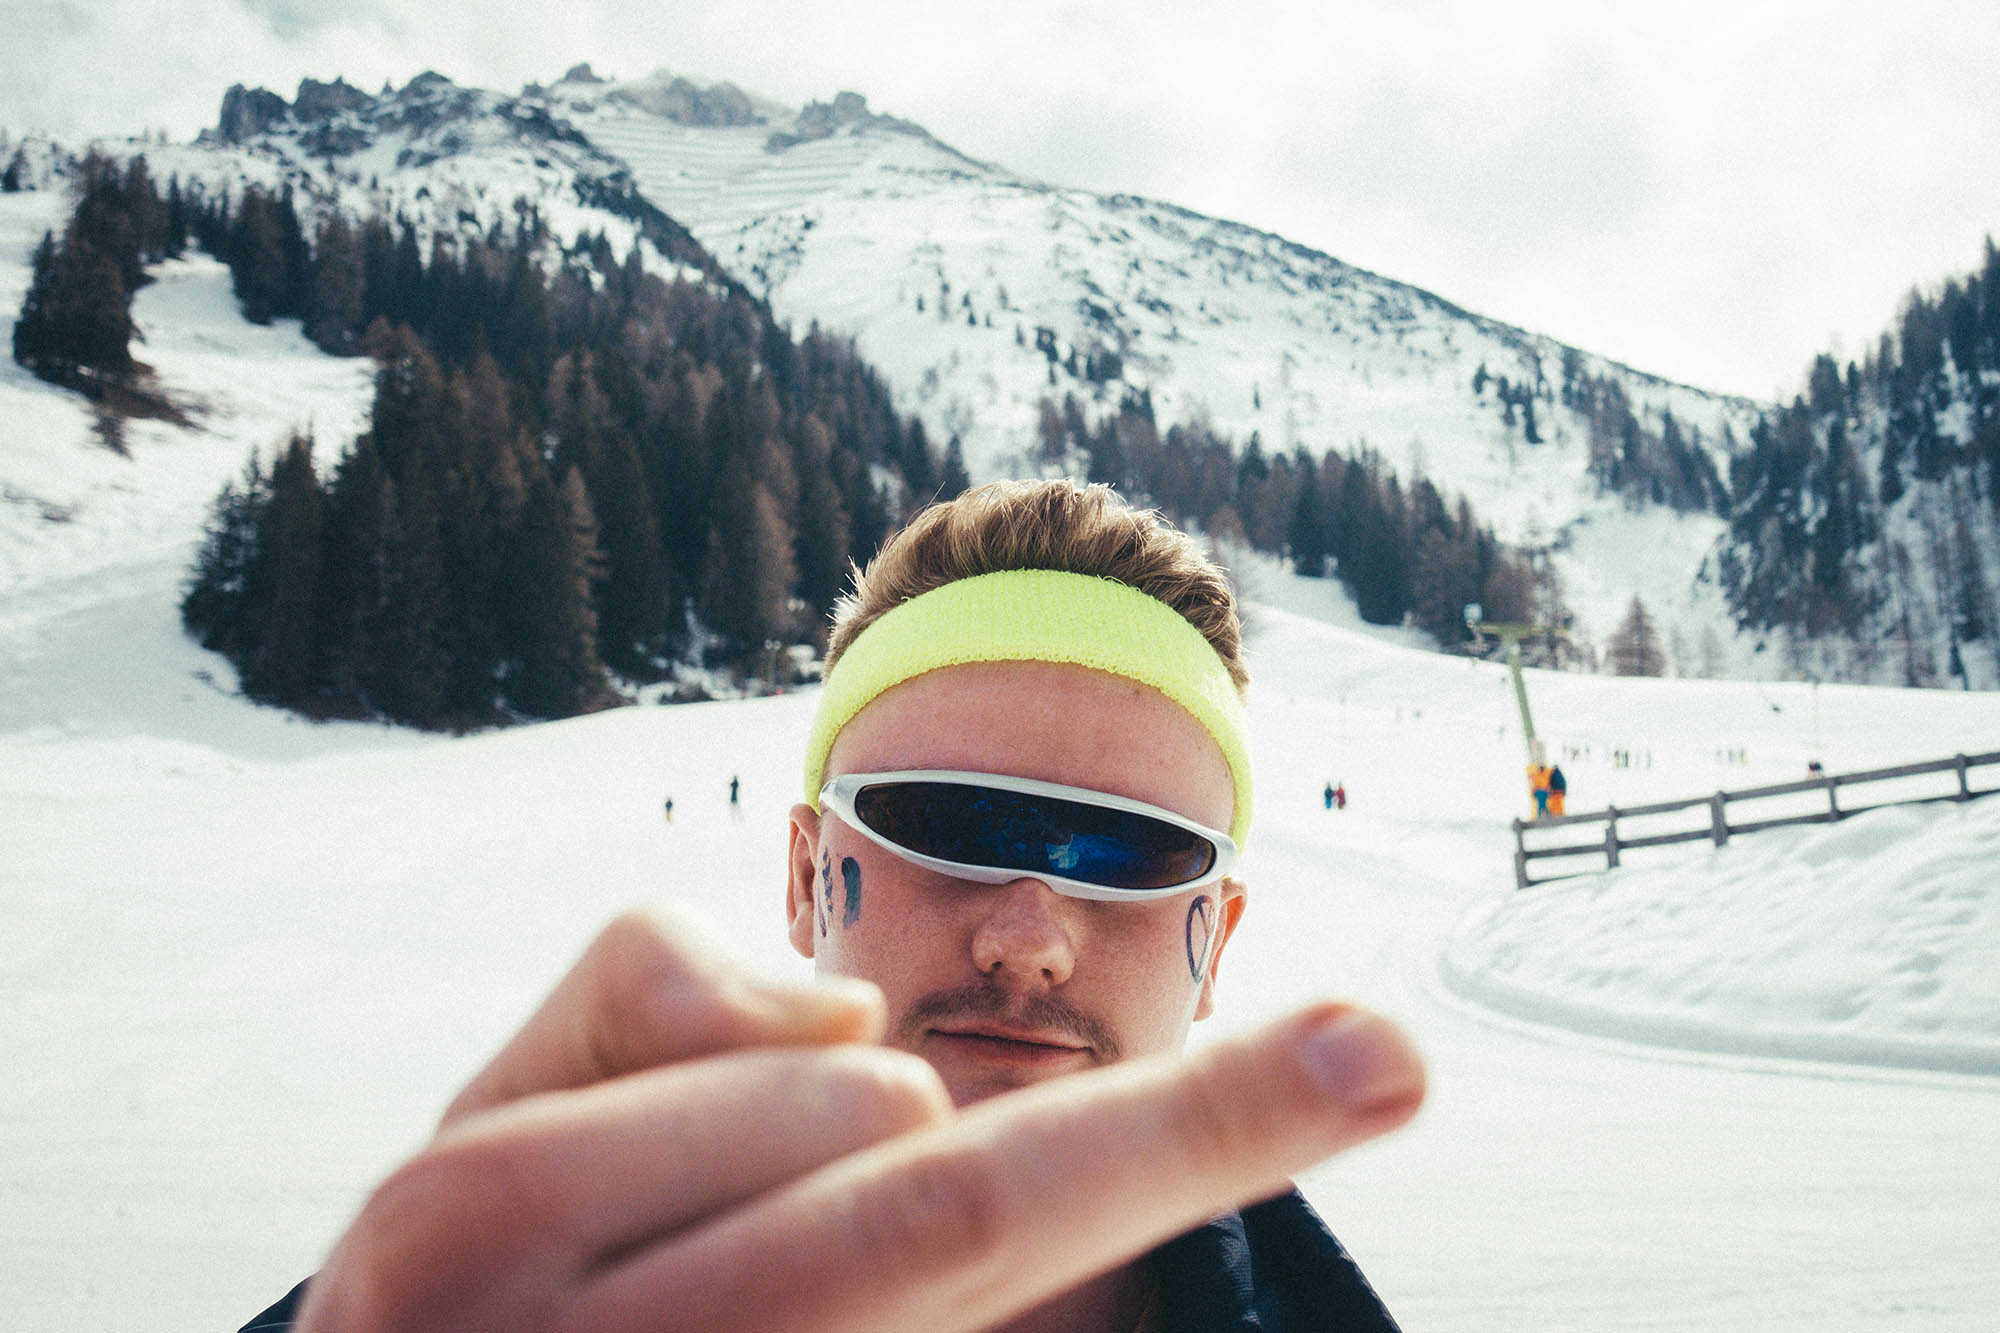 Florian Schüppel UGLY SKIING DAY